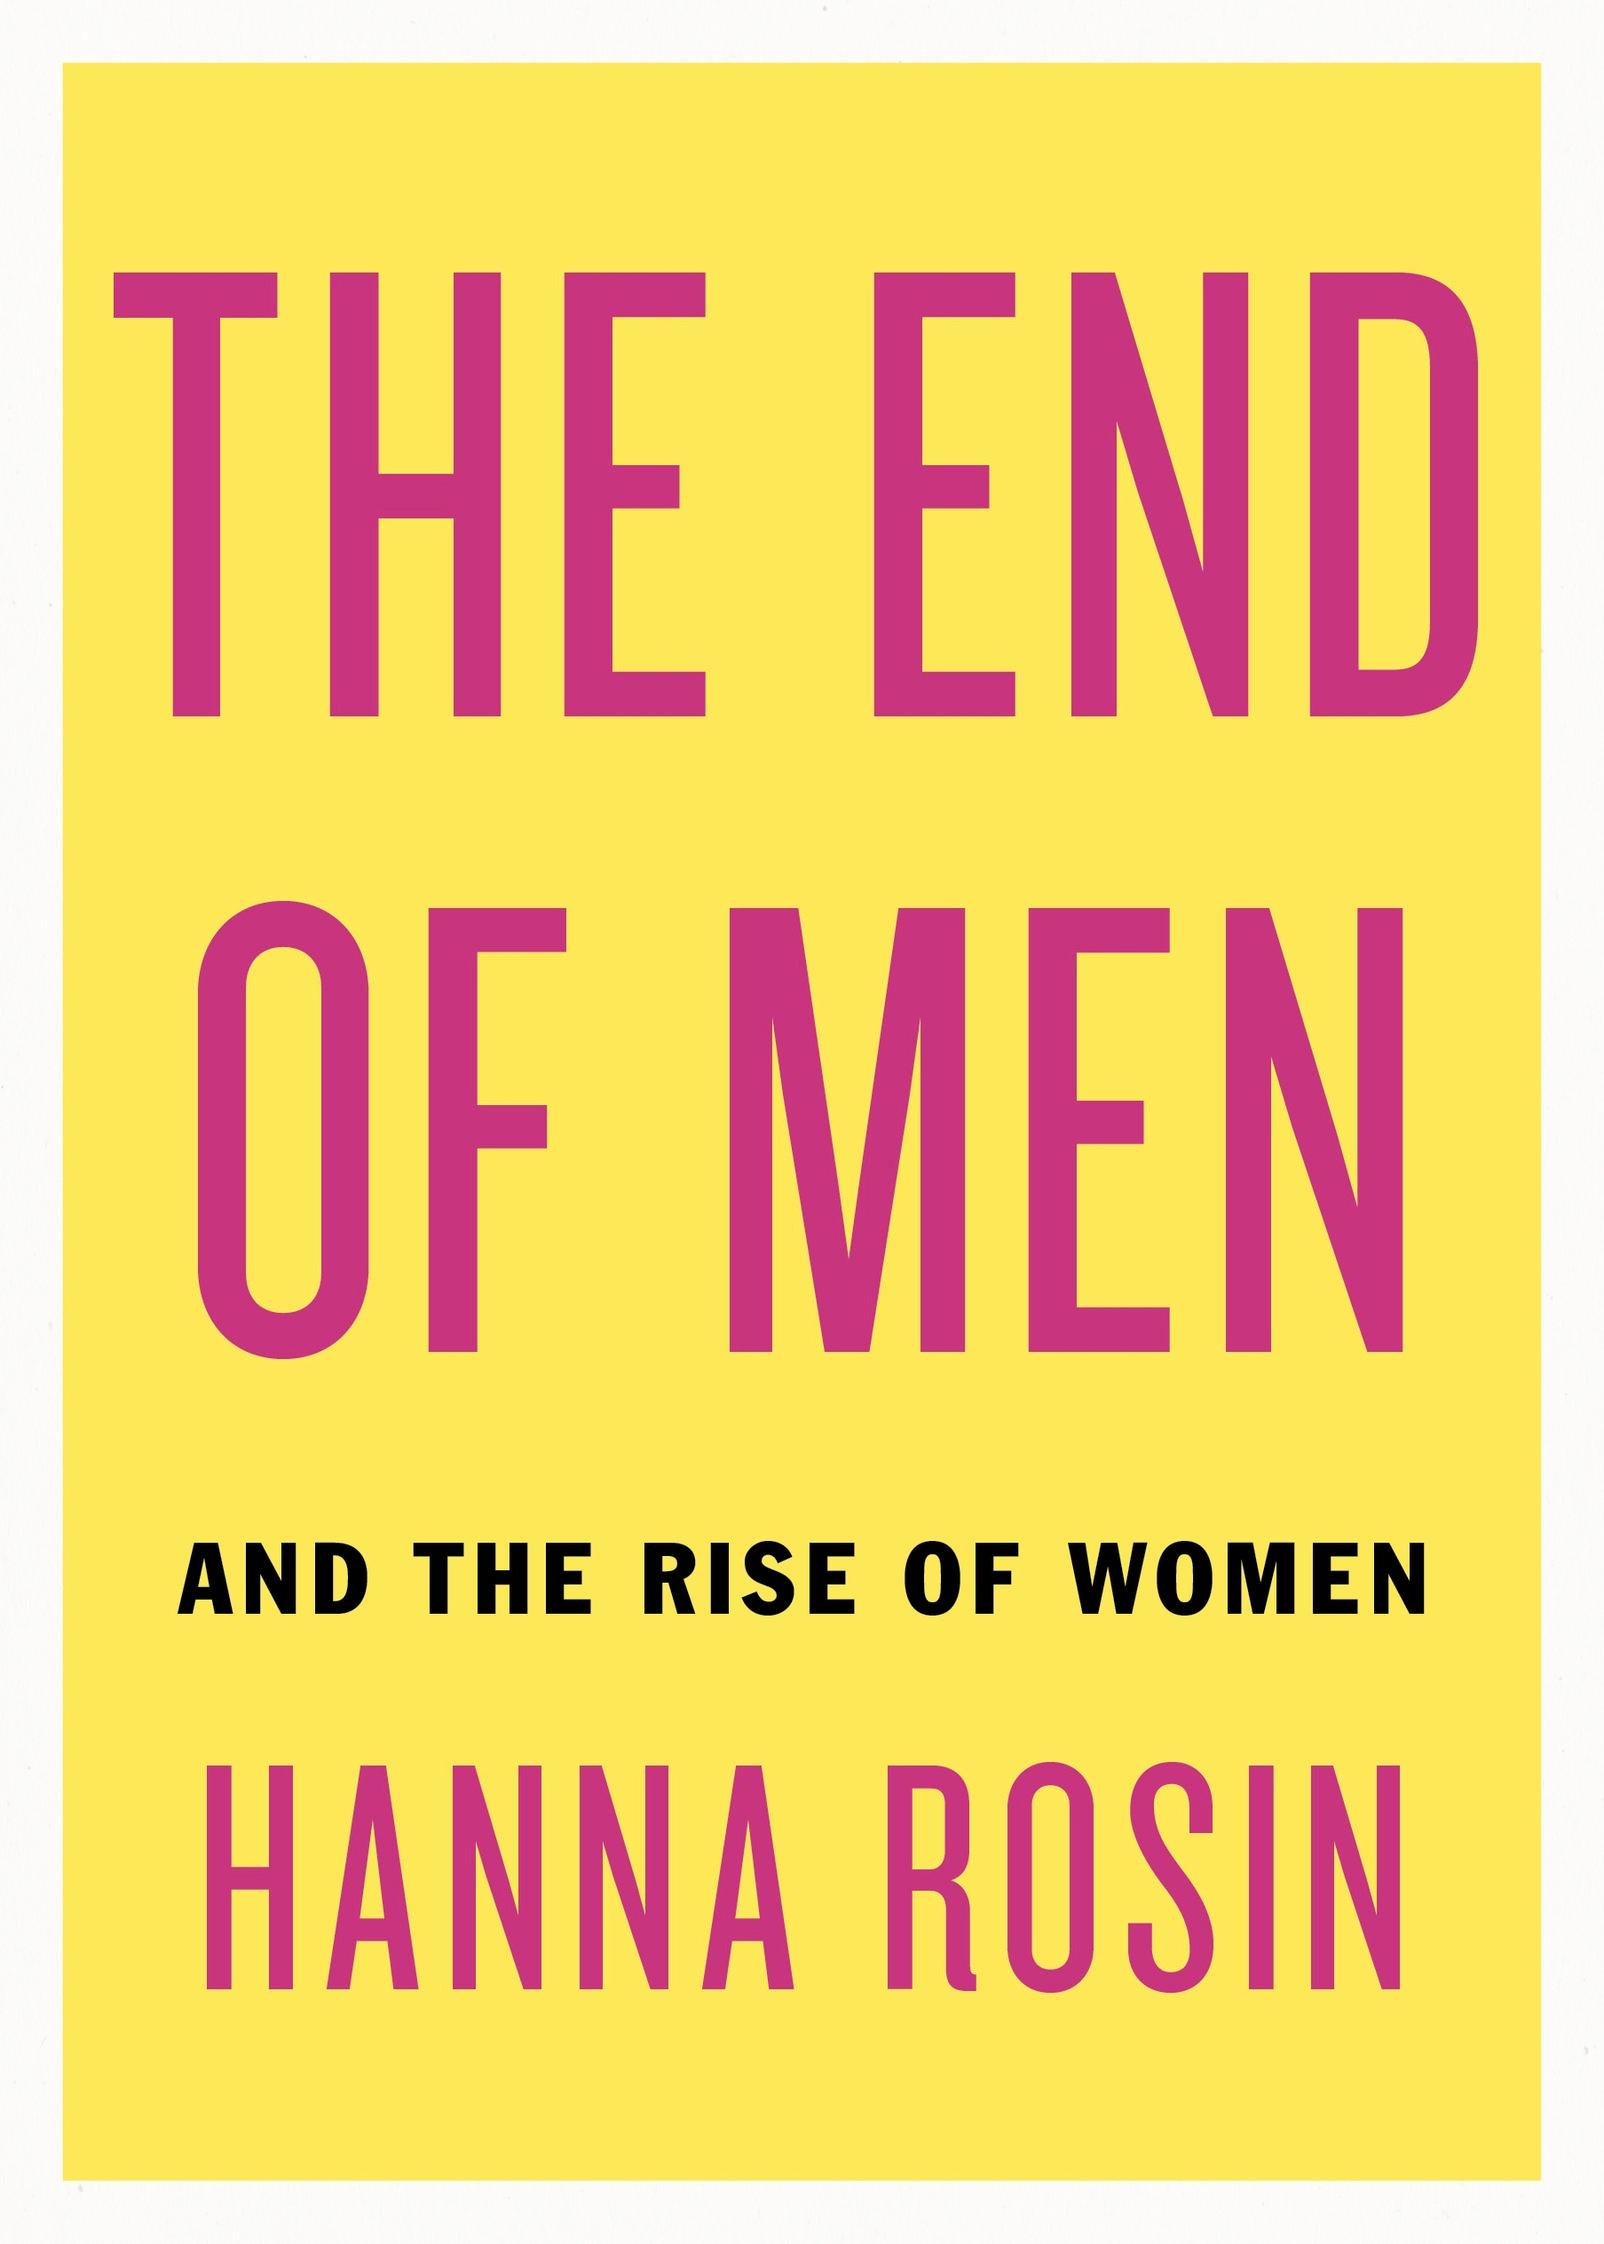 the end of men hanna rosin Buy the end of men: and the rise of women 1 by hanna rosin (isbn: 9781594488047) from amazon's book store everyday low prices and free delivery on.